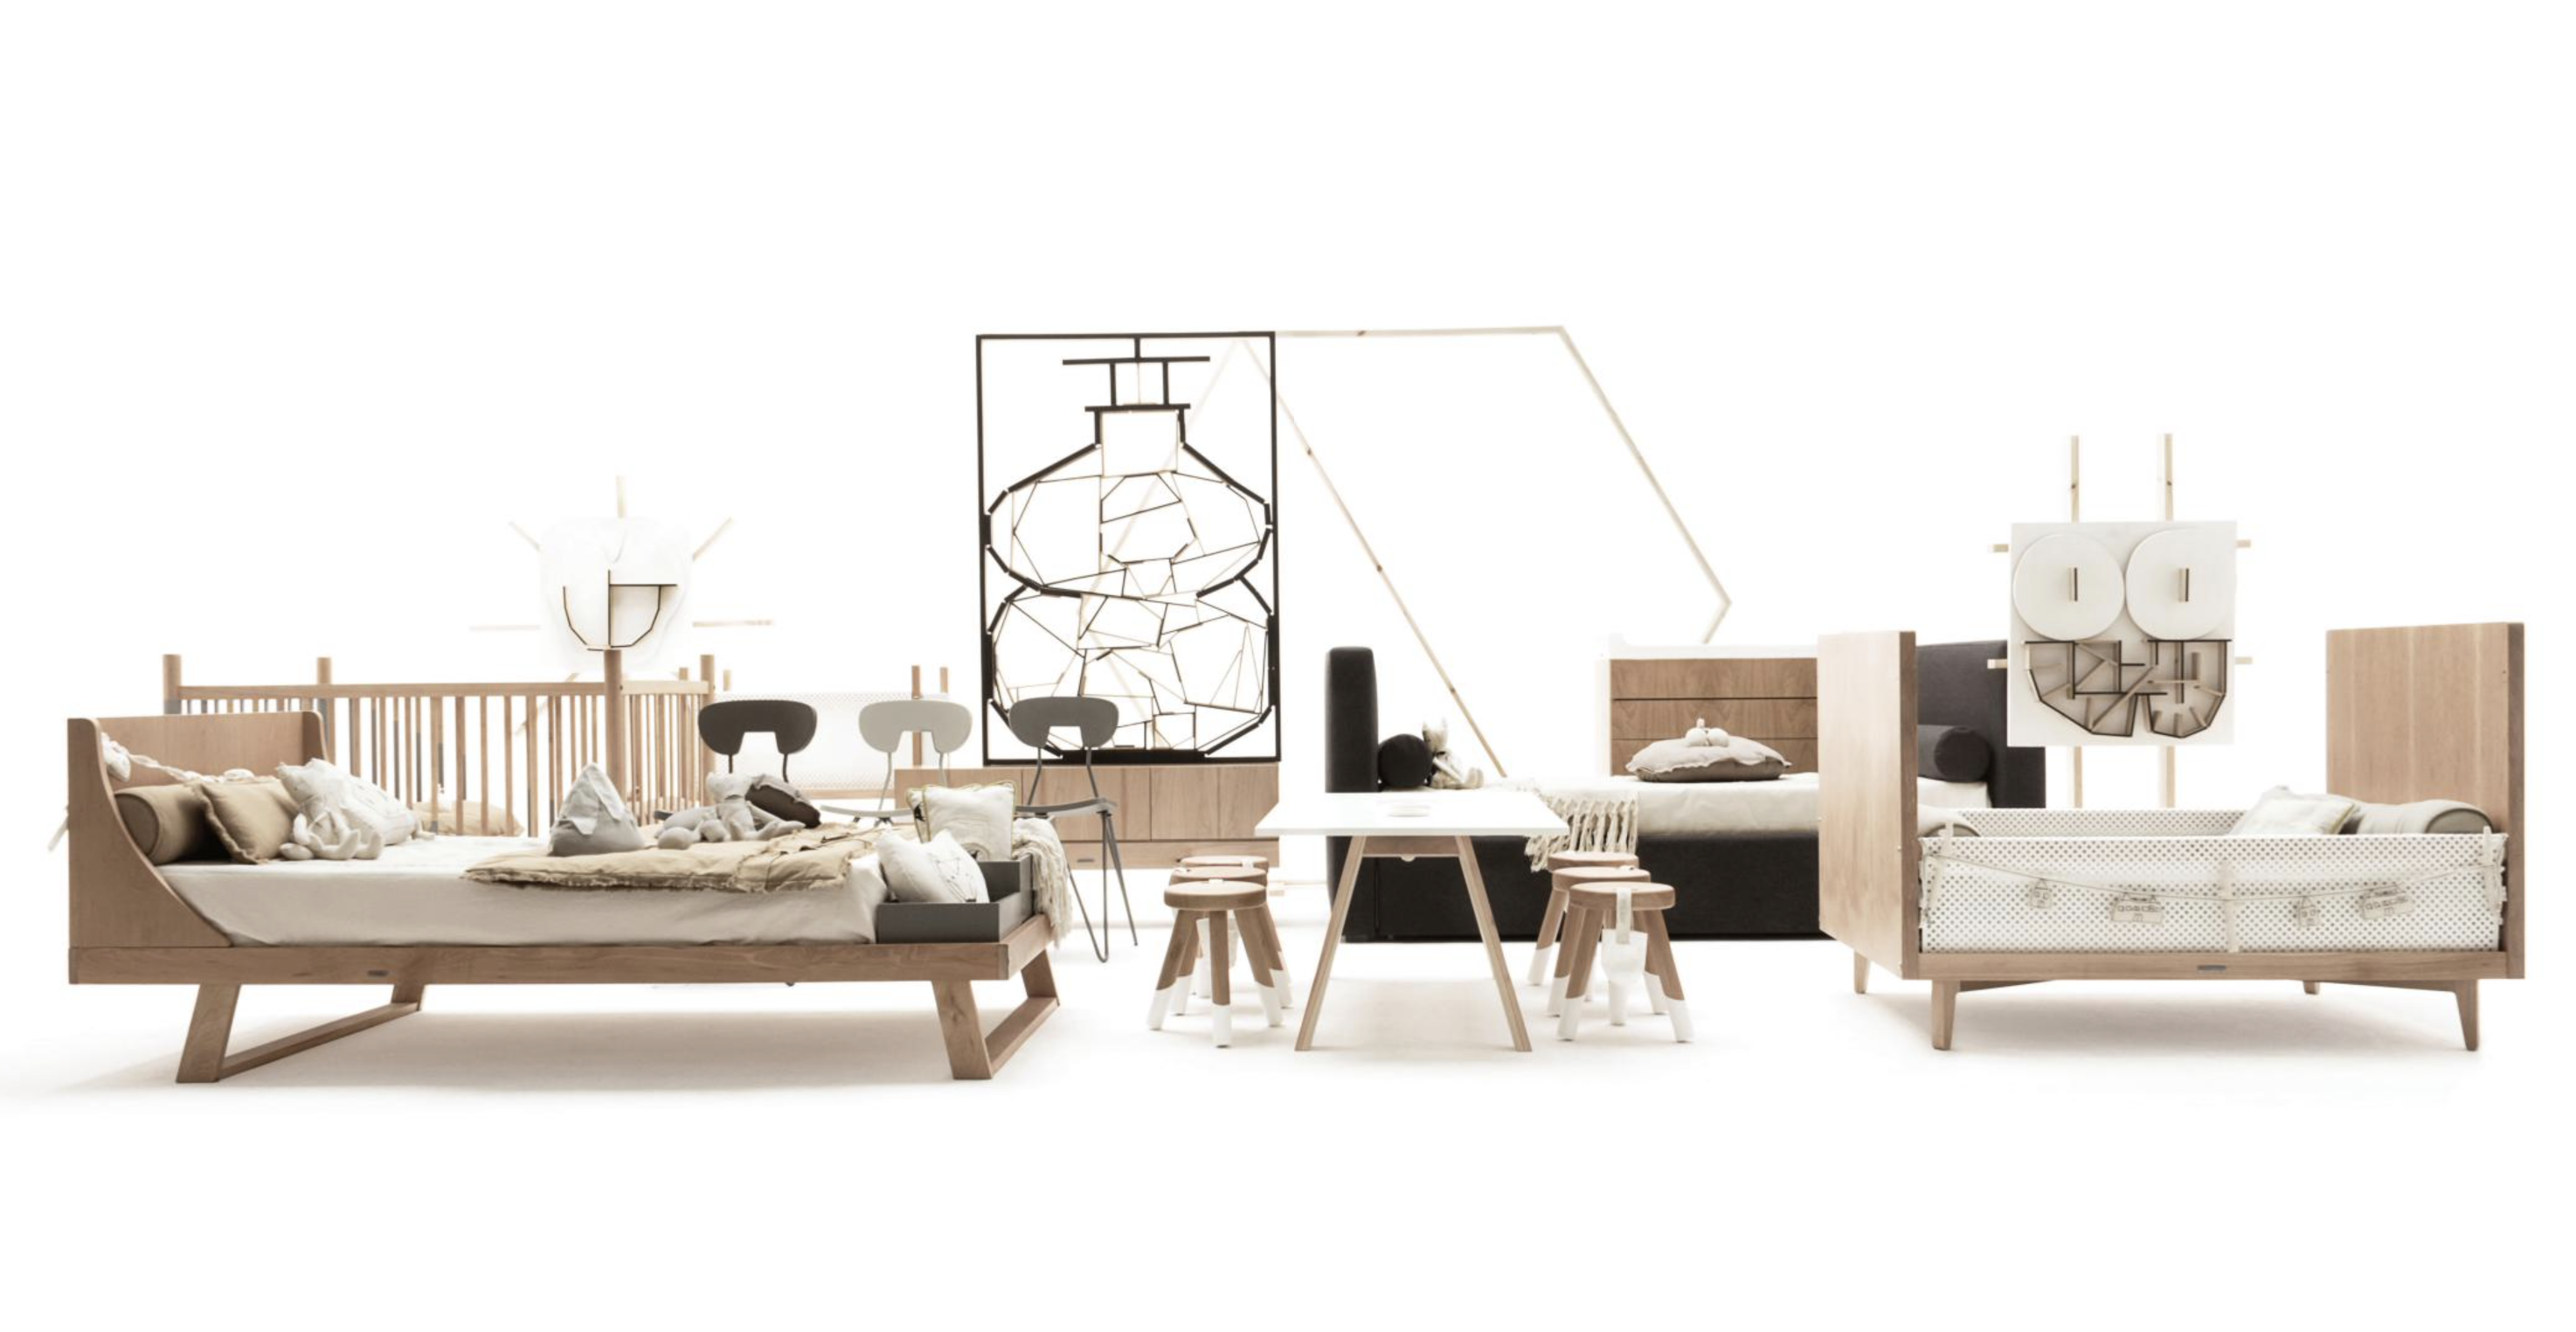 Buenos Aires based Krethaus offers modern design for children that will stand the test of time